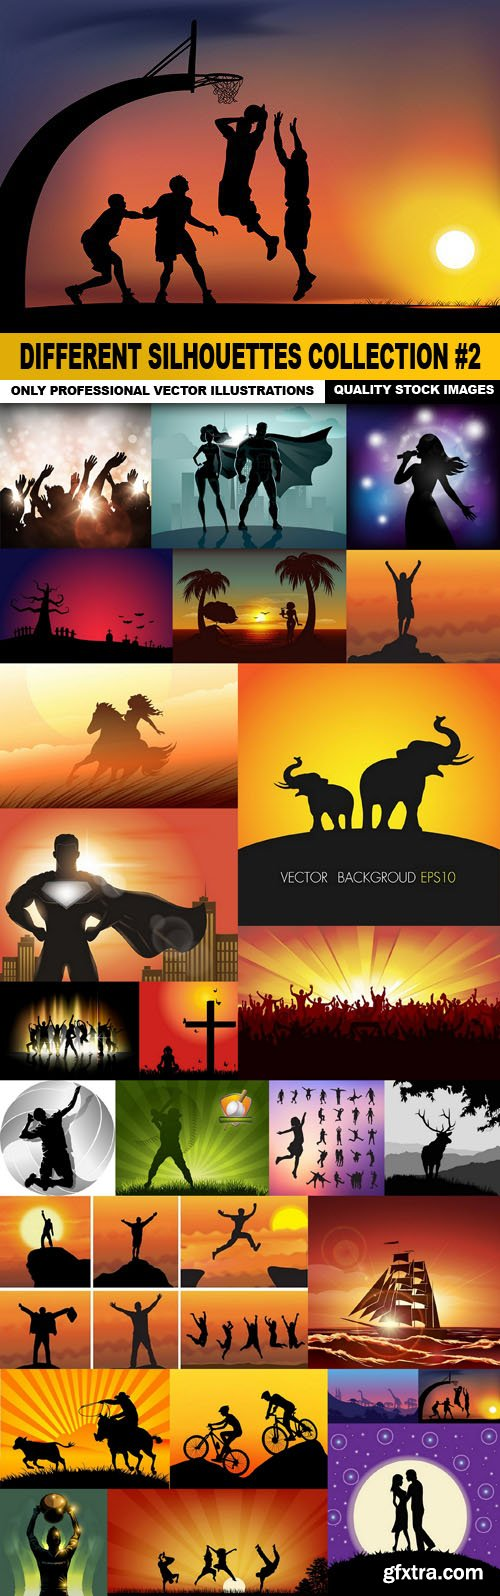 Different Silhouettes Collection #2 - 25 Vector